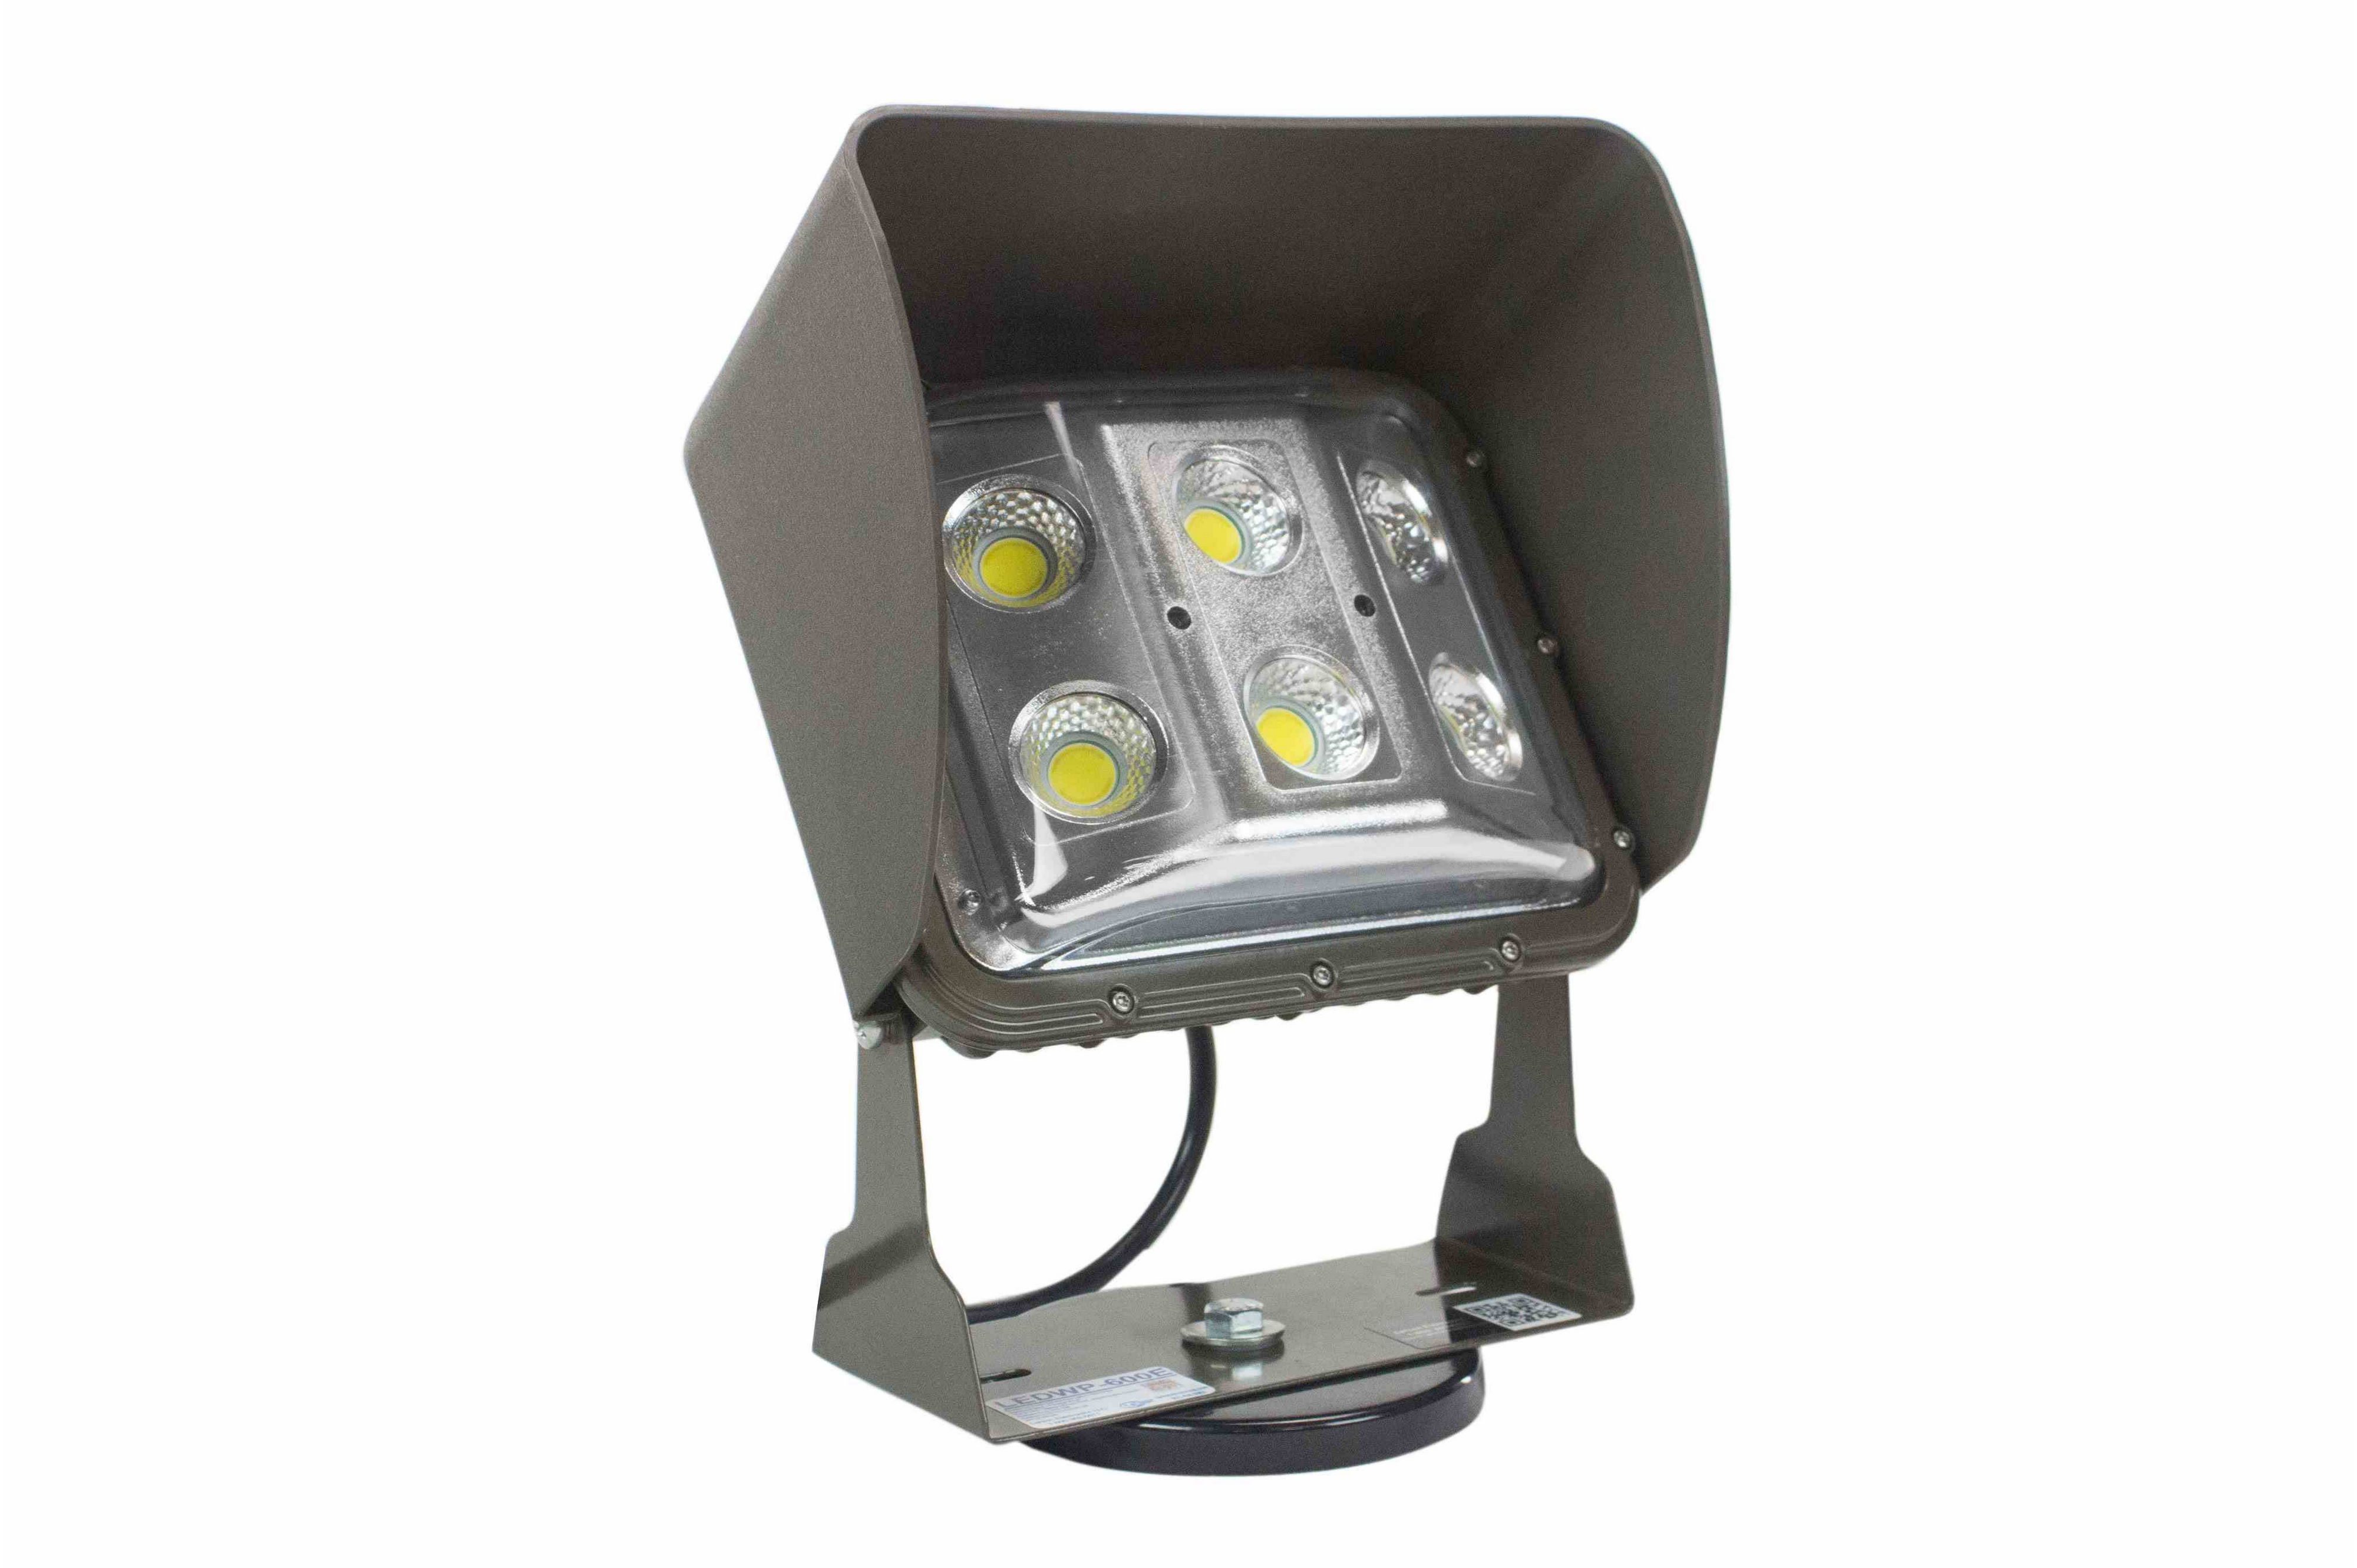 full exterior outdoors led security fixtures lighting flood outside light lights ideas size of outdoor